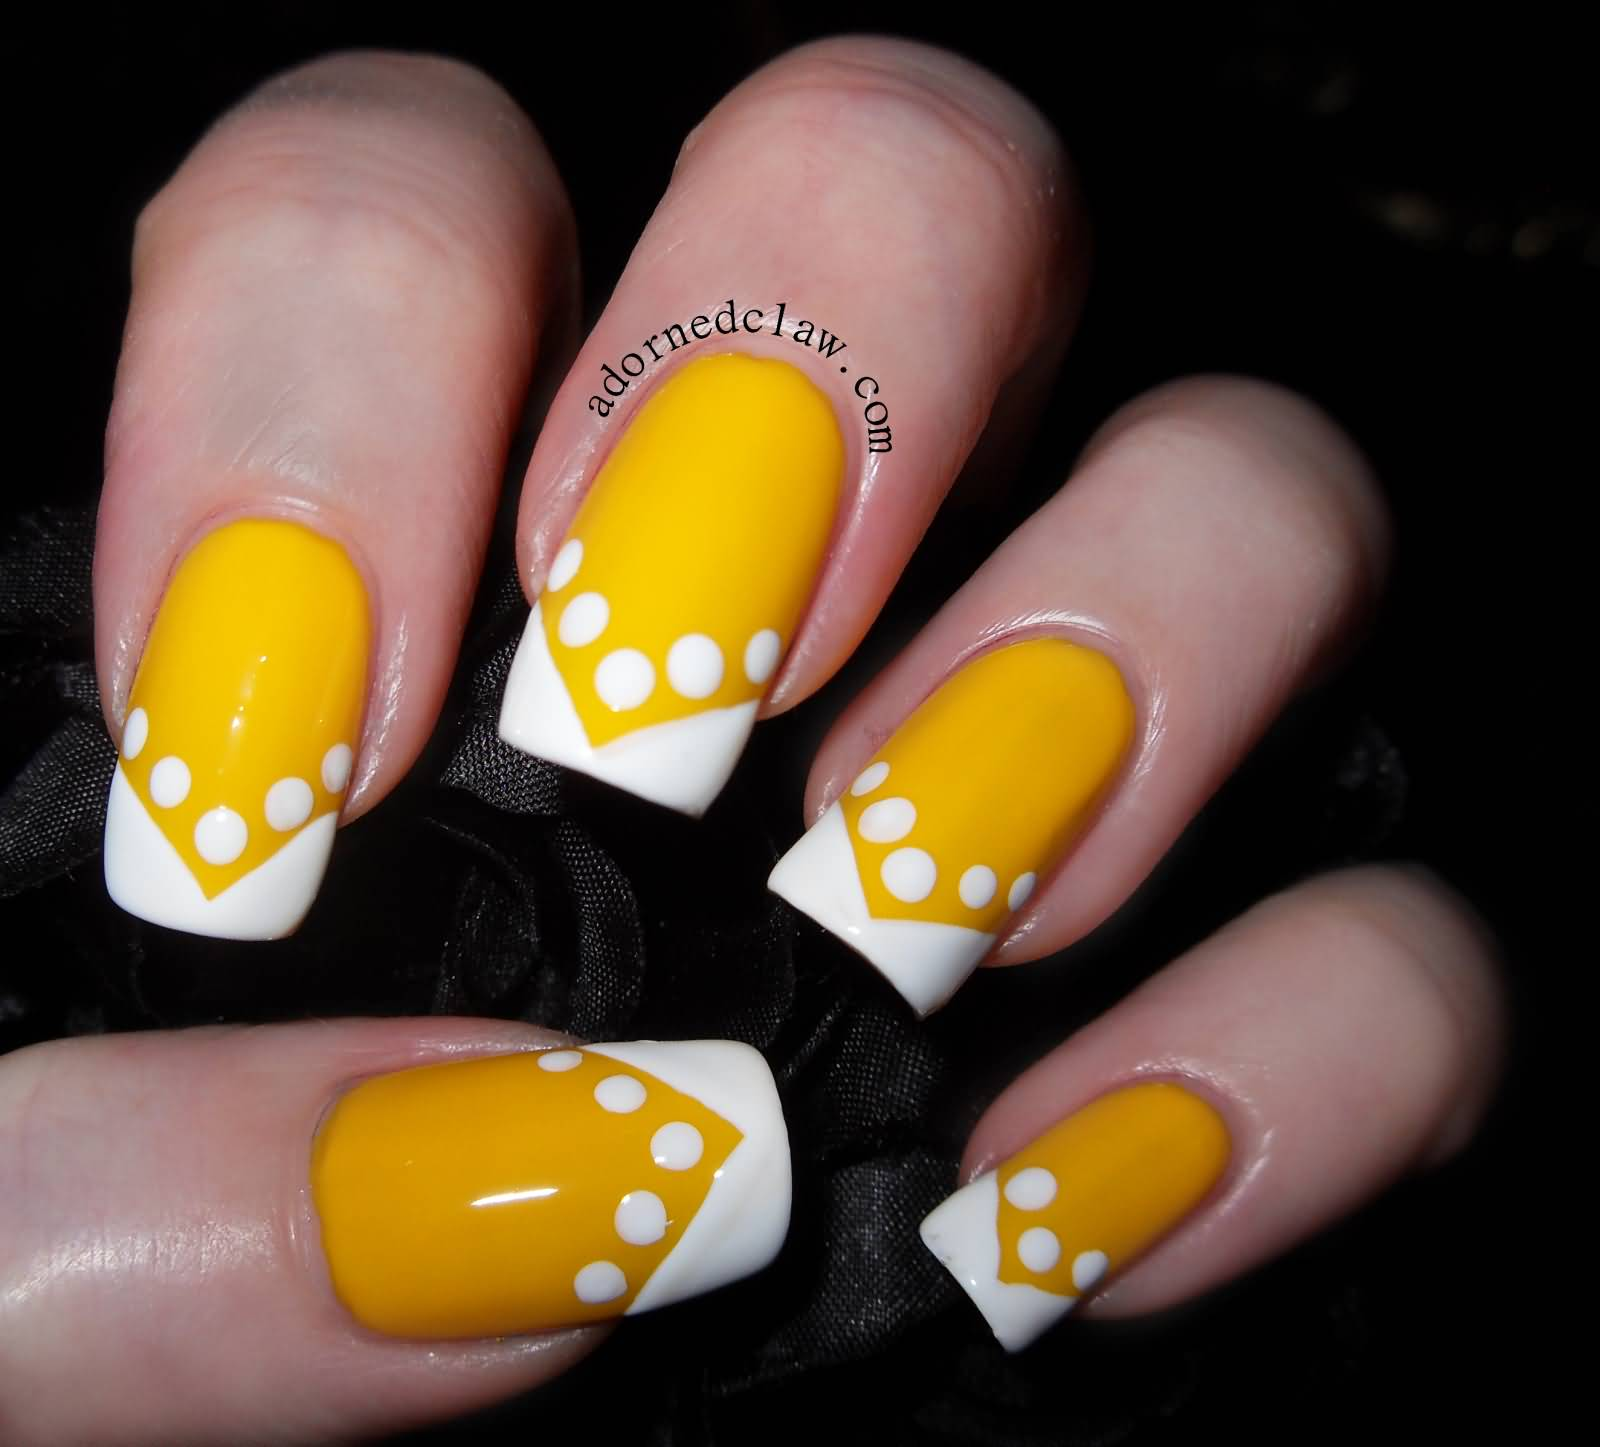 Yellow Nails With White Chevron Design And Polka Dots Design